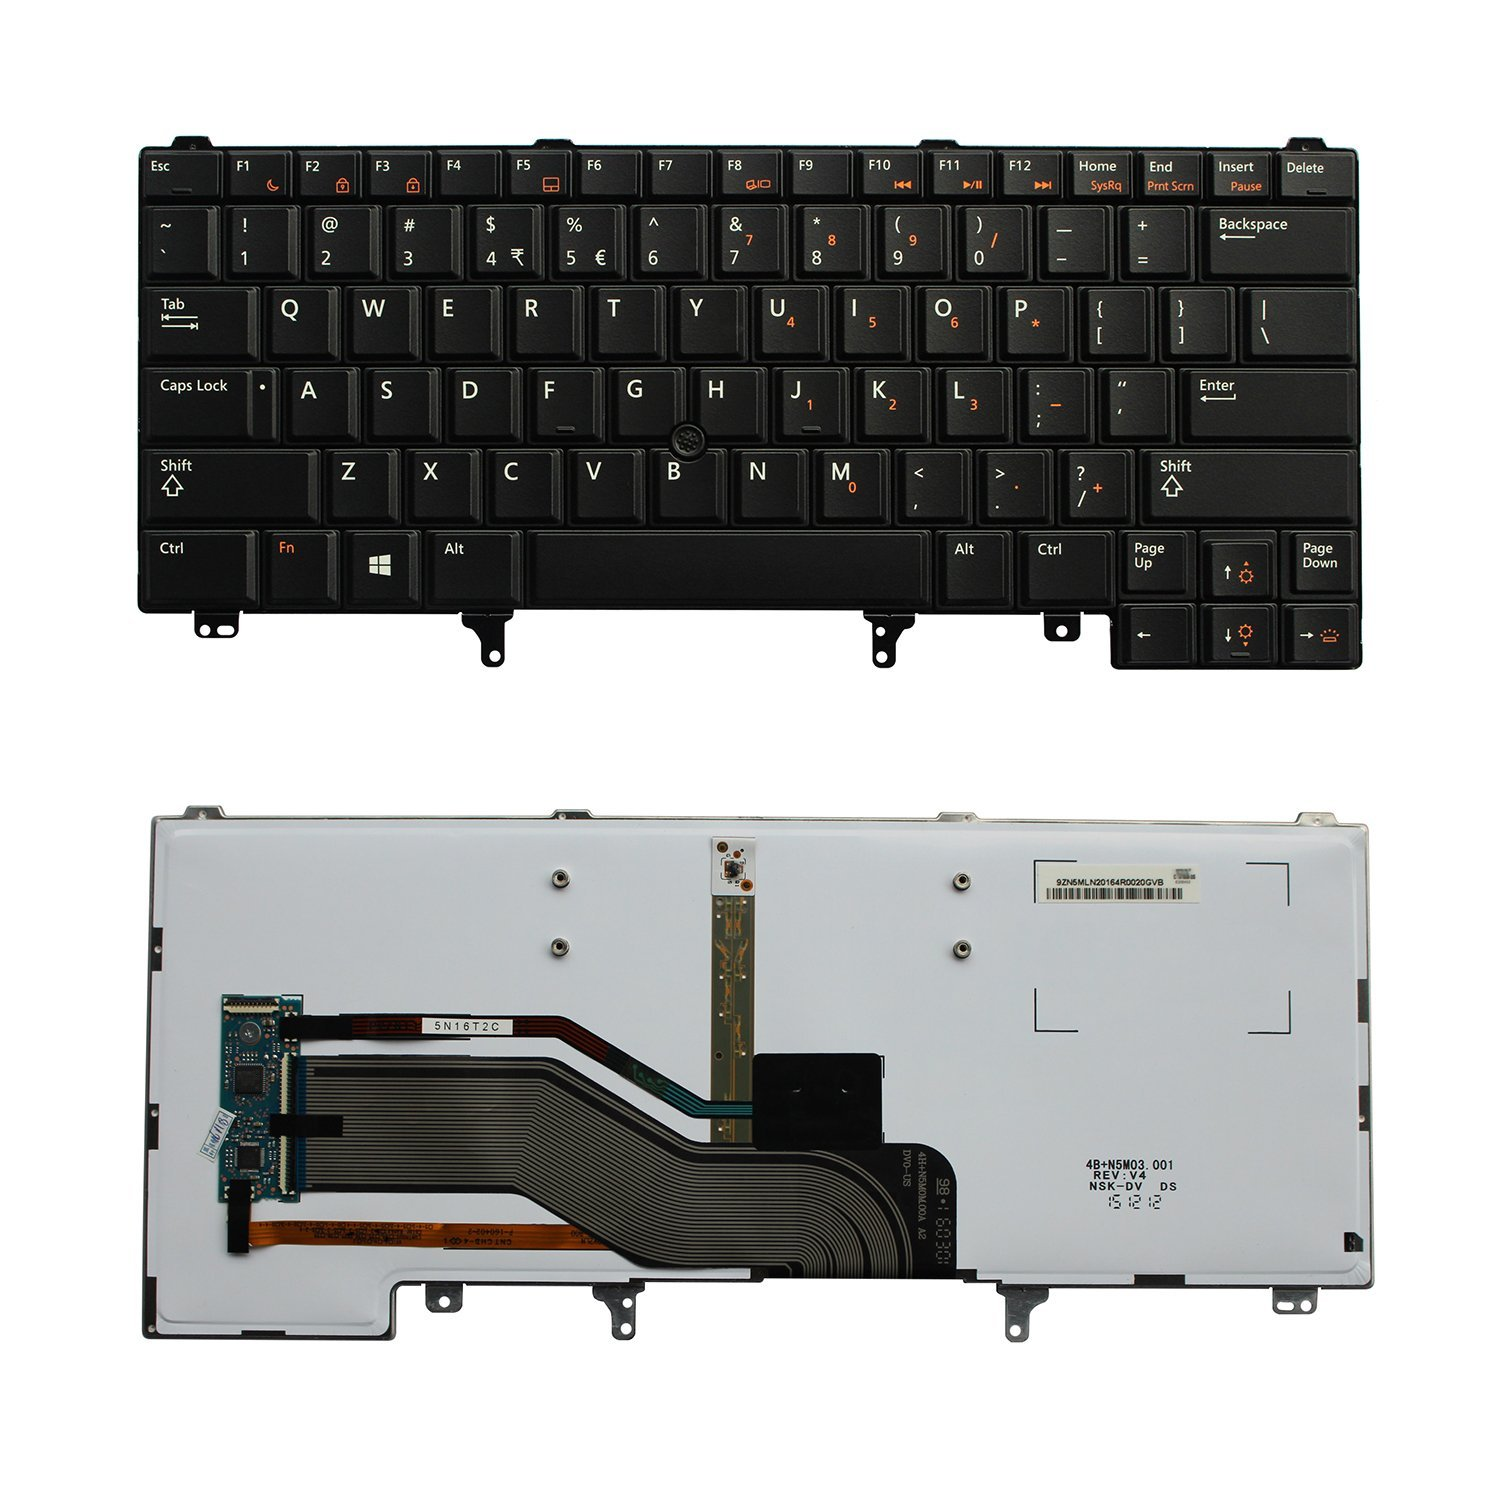 New Relacement US Backlit Keyboard with Mouse Stick Pointer for DELL Latitude E6320 E6330 E6420 E6430 E6440 E5420 E5430 Series Laptop 0CN5HF 0XMRJV 04CTXW PK130VG3B00